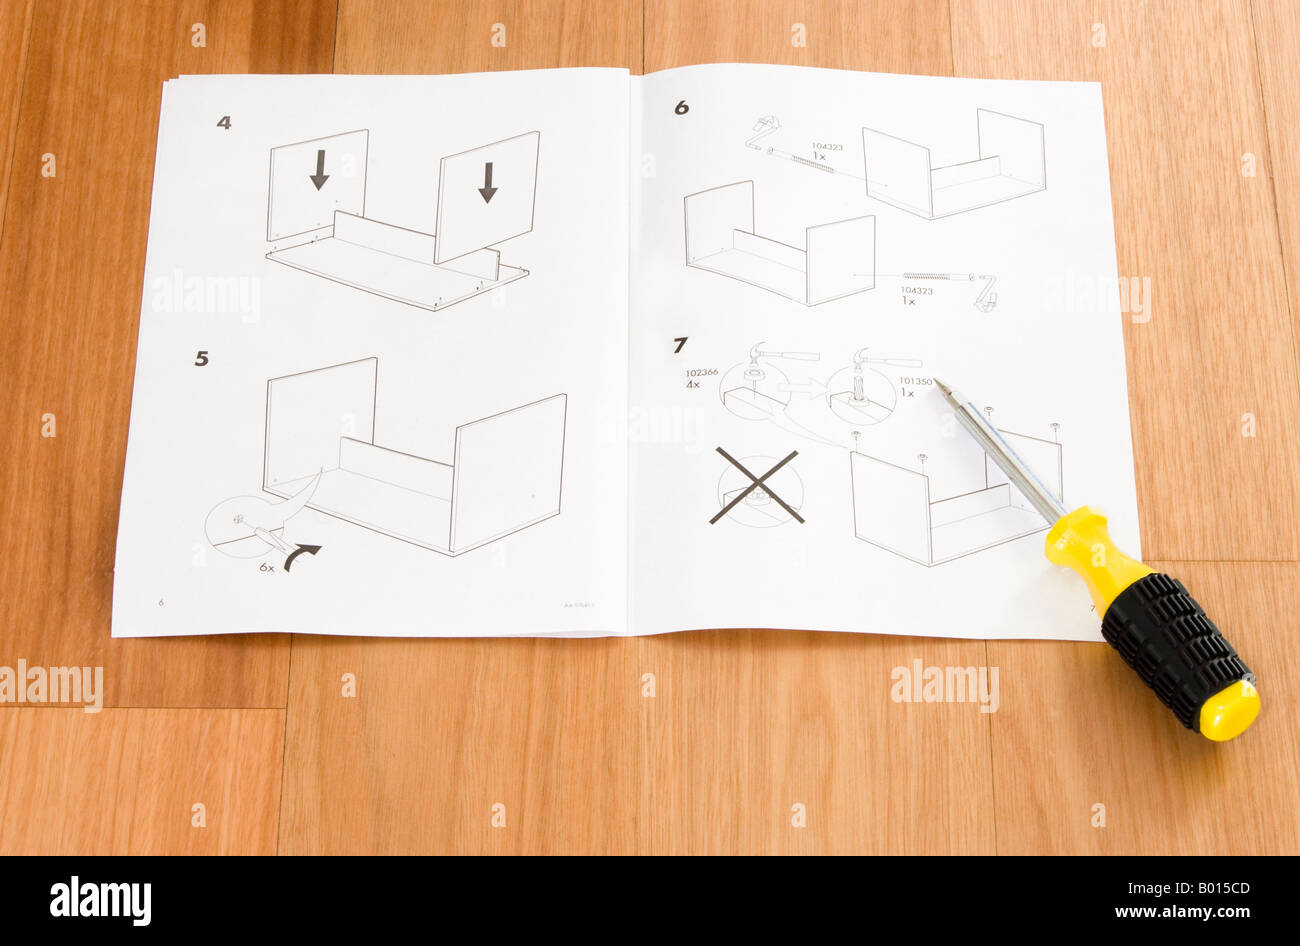 instruction manual to build table